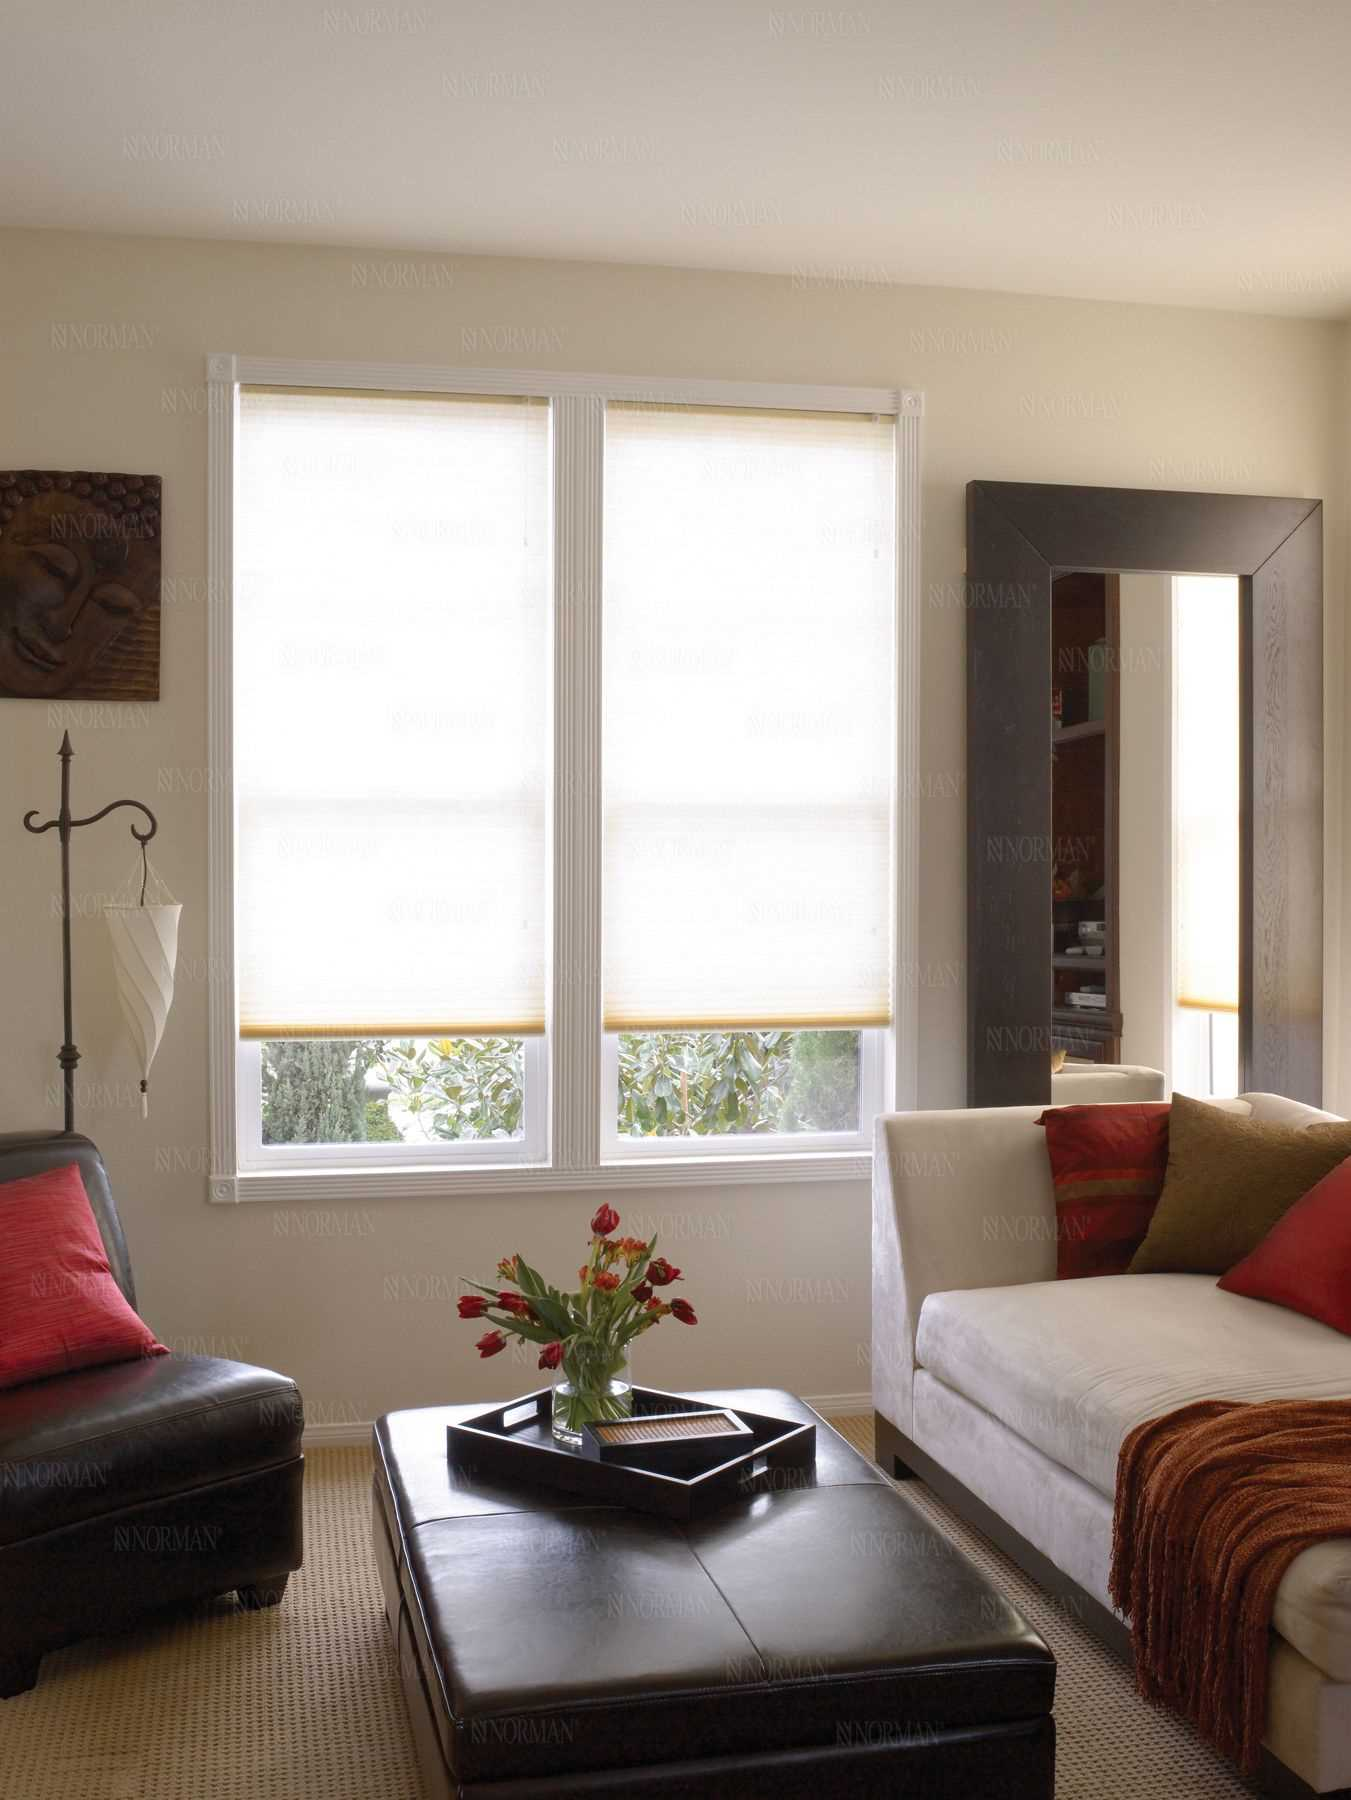 Norman Cellular Shades